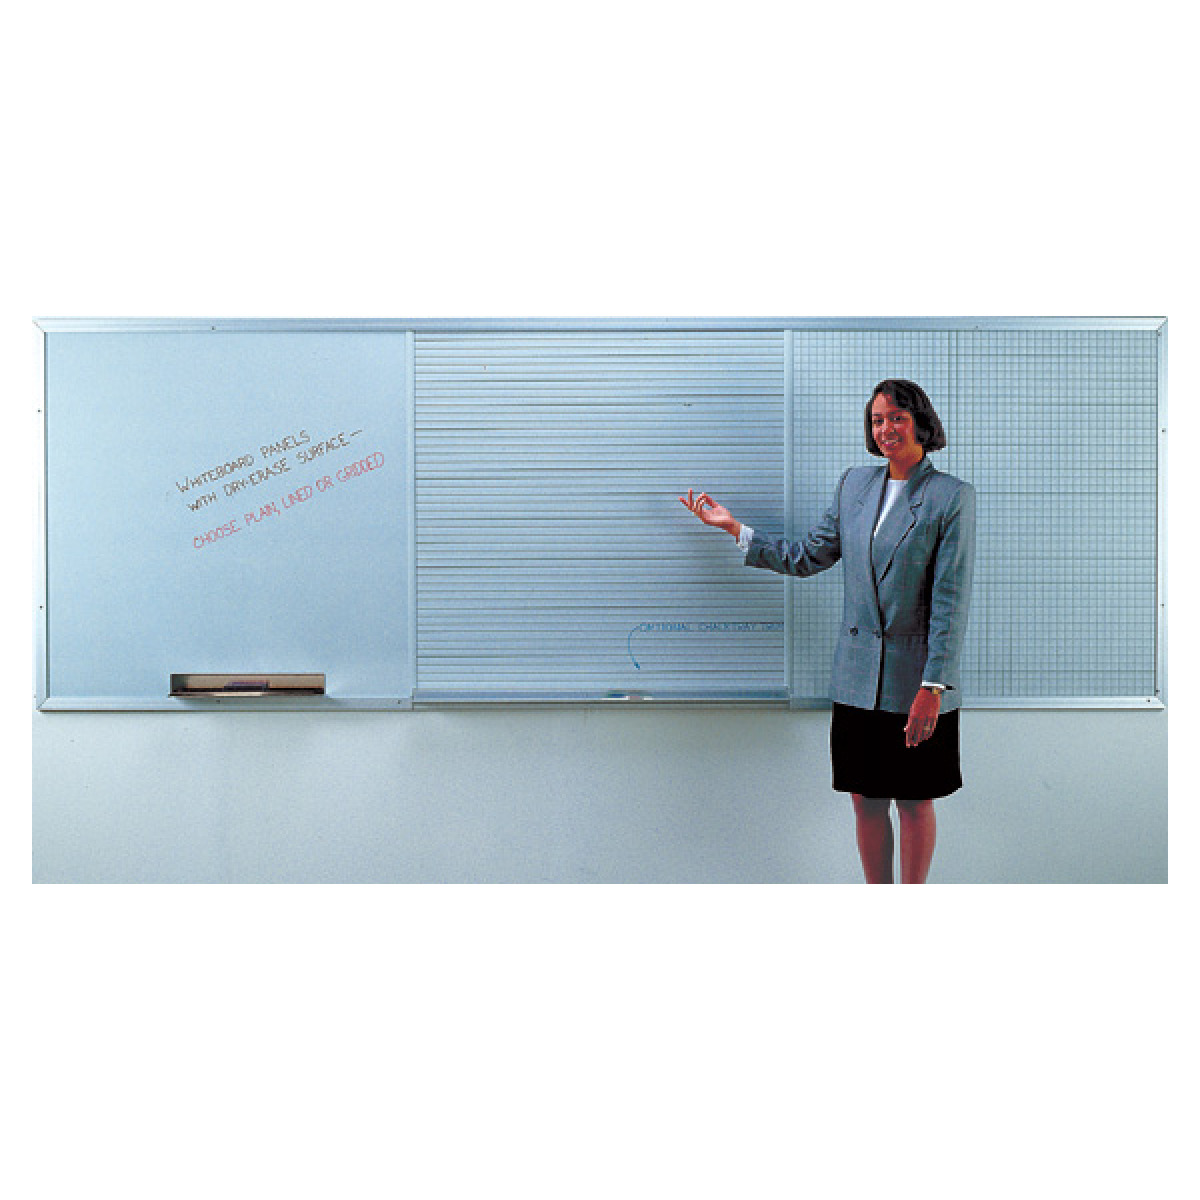 three whiteboard panels mounted on a wall